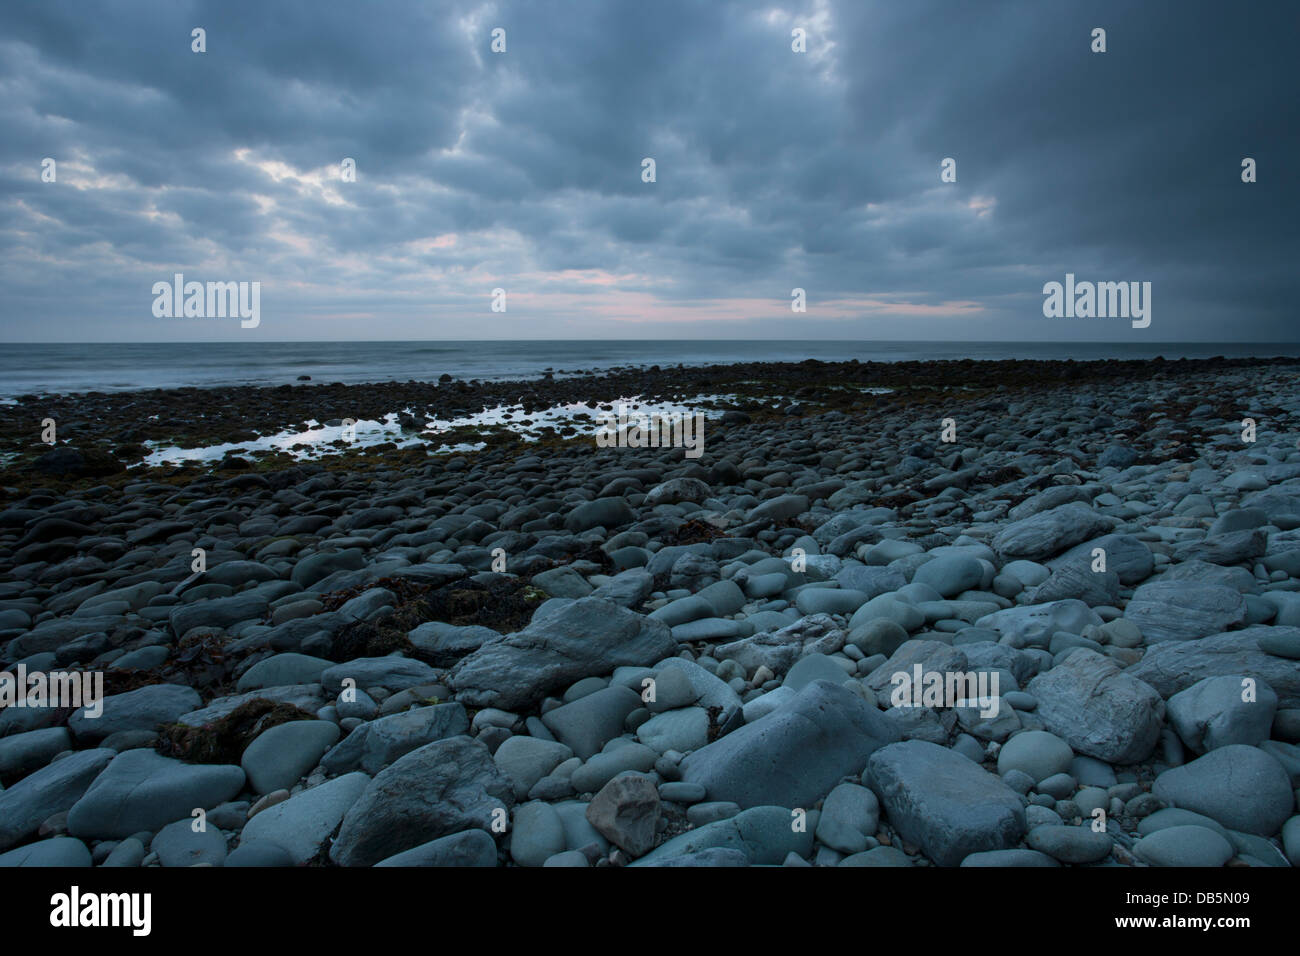 View out to the Irish Sea from the Welsh West Coast, Barmouth Bay, Wales - Stock Image